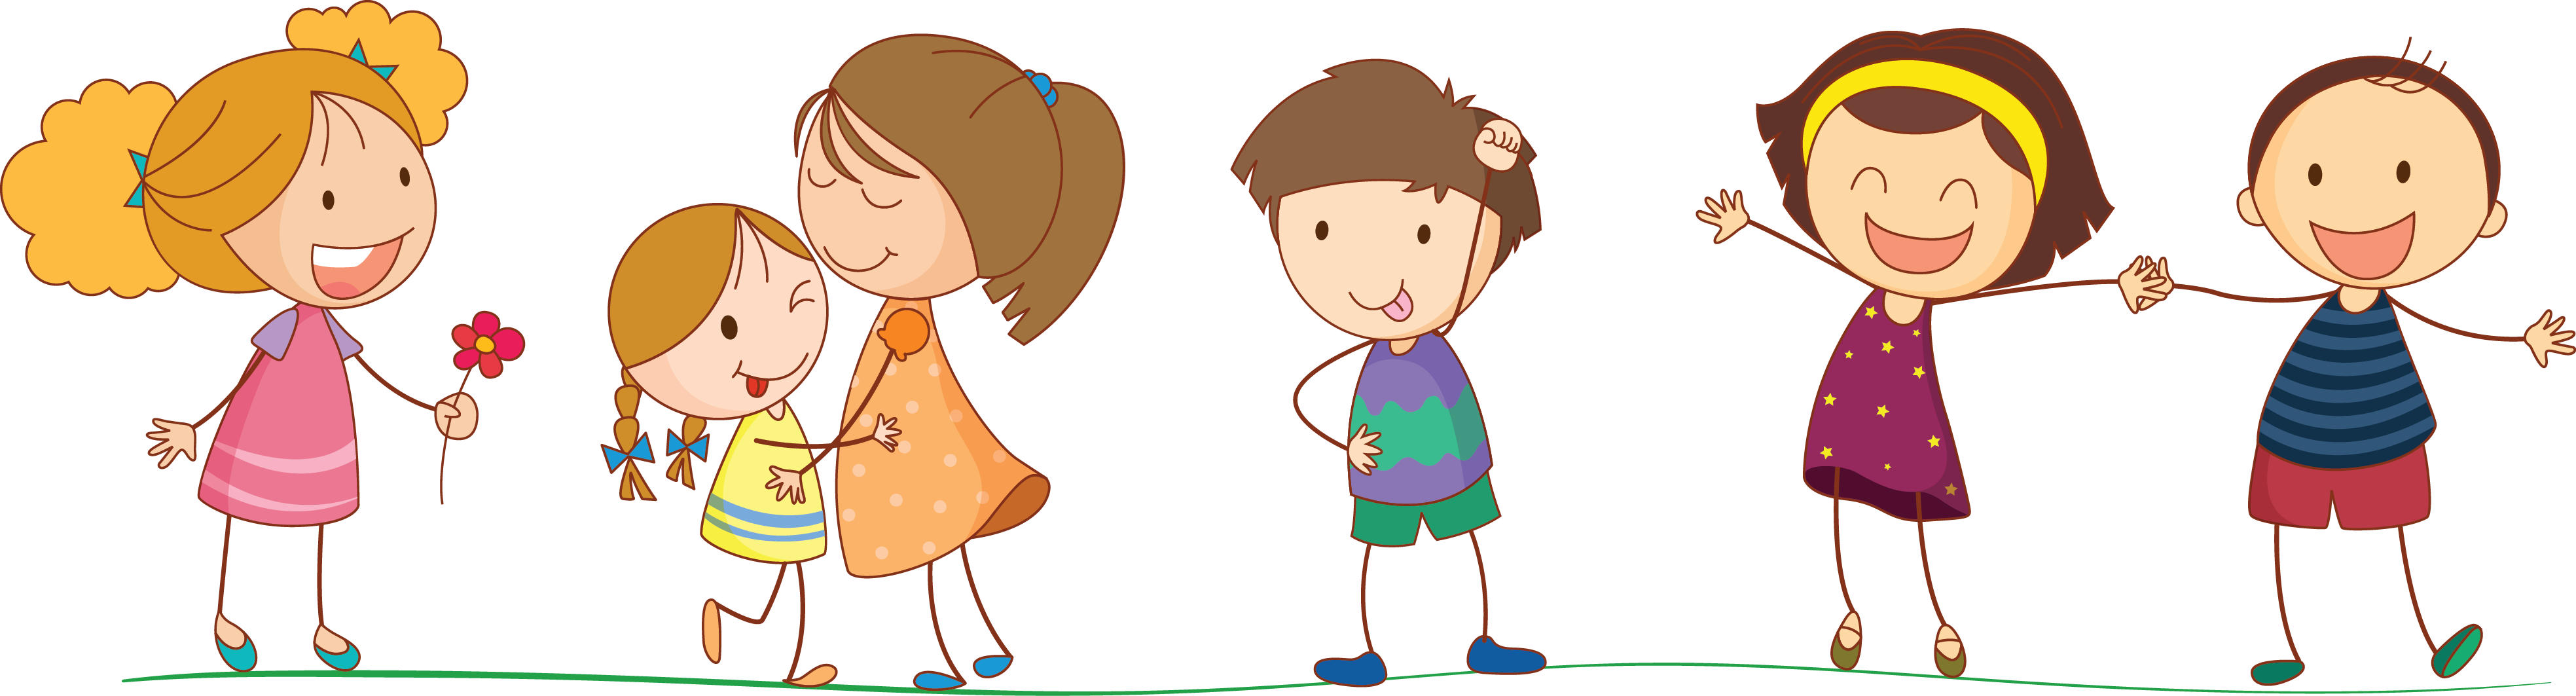 Children png clipart. Kids transparent pictures free